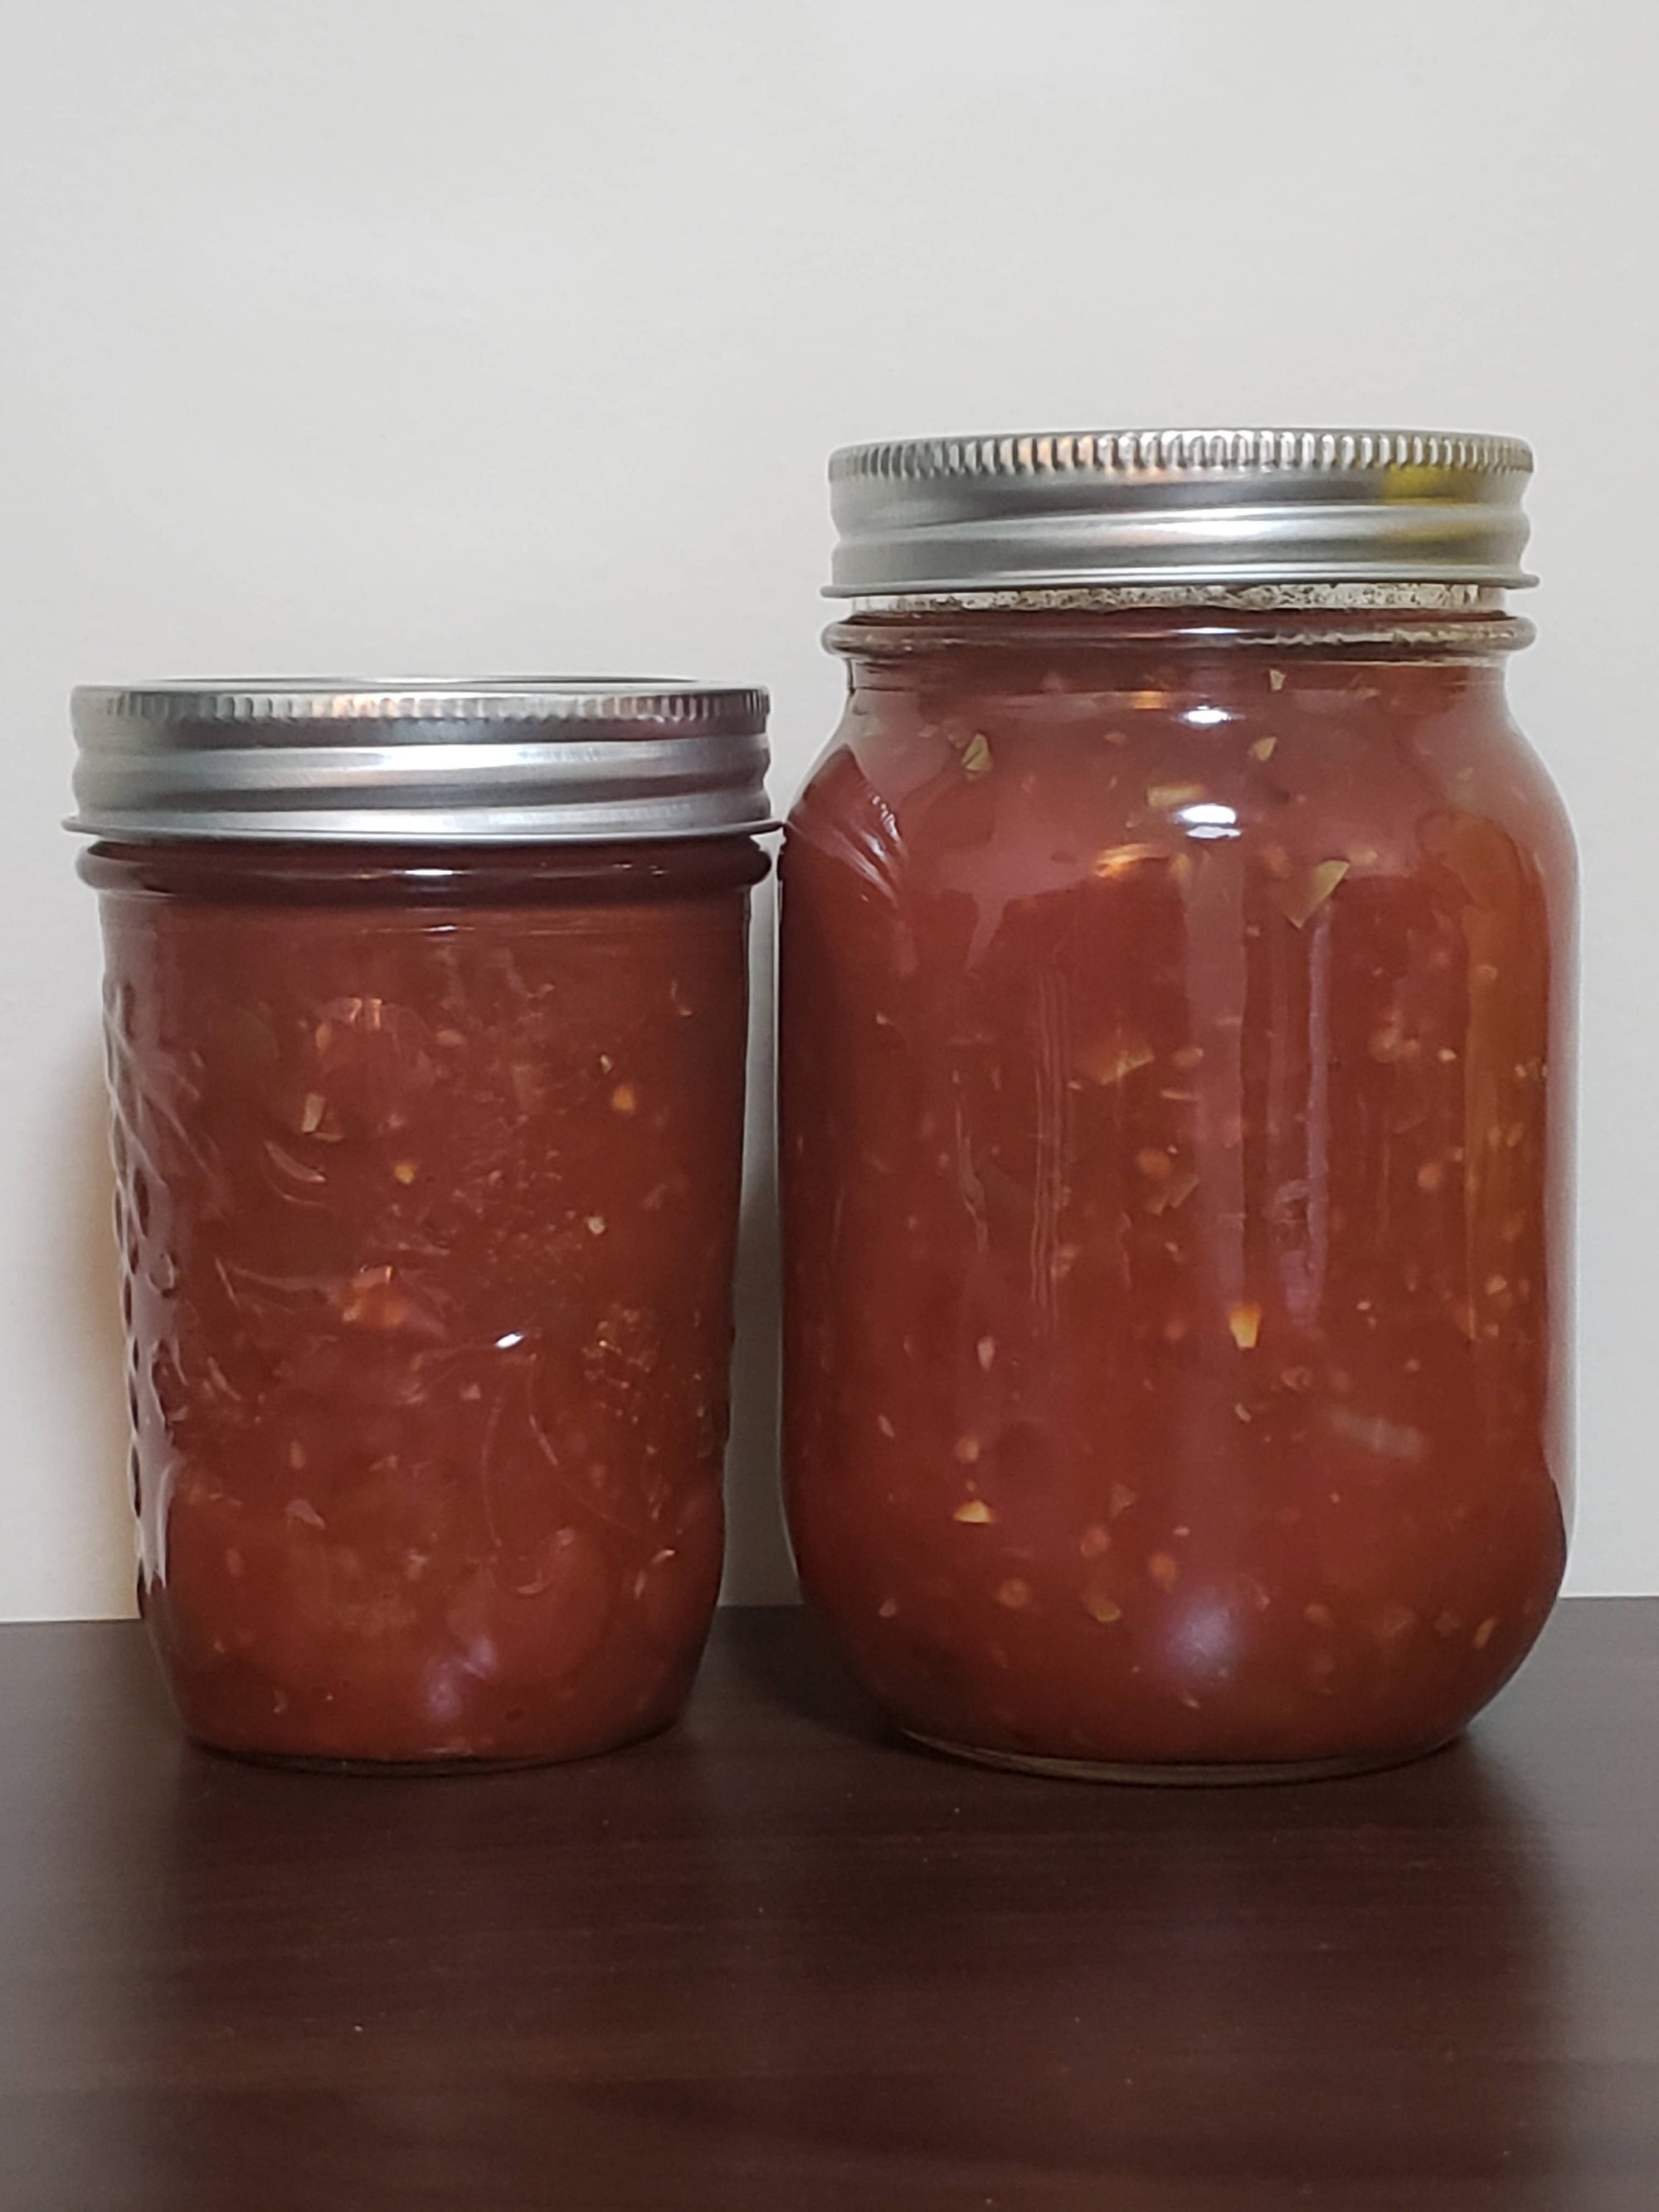 Homemade local Salsa- mild and spicy